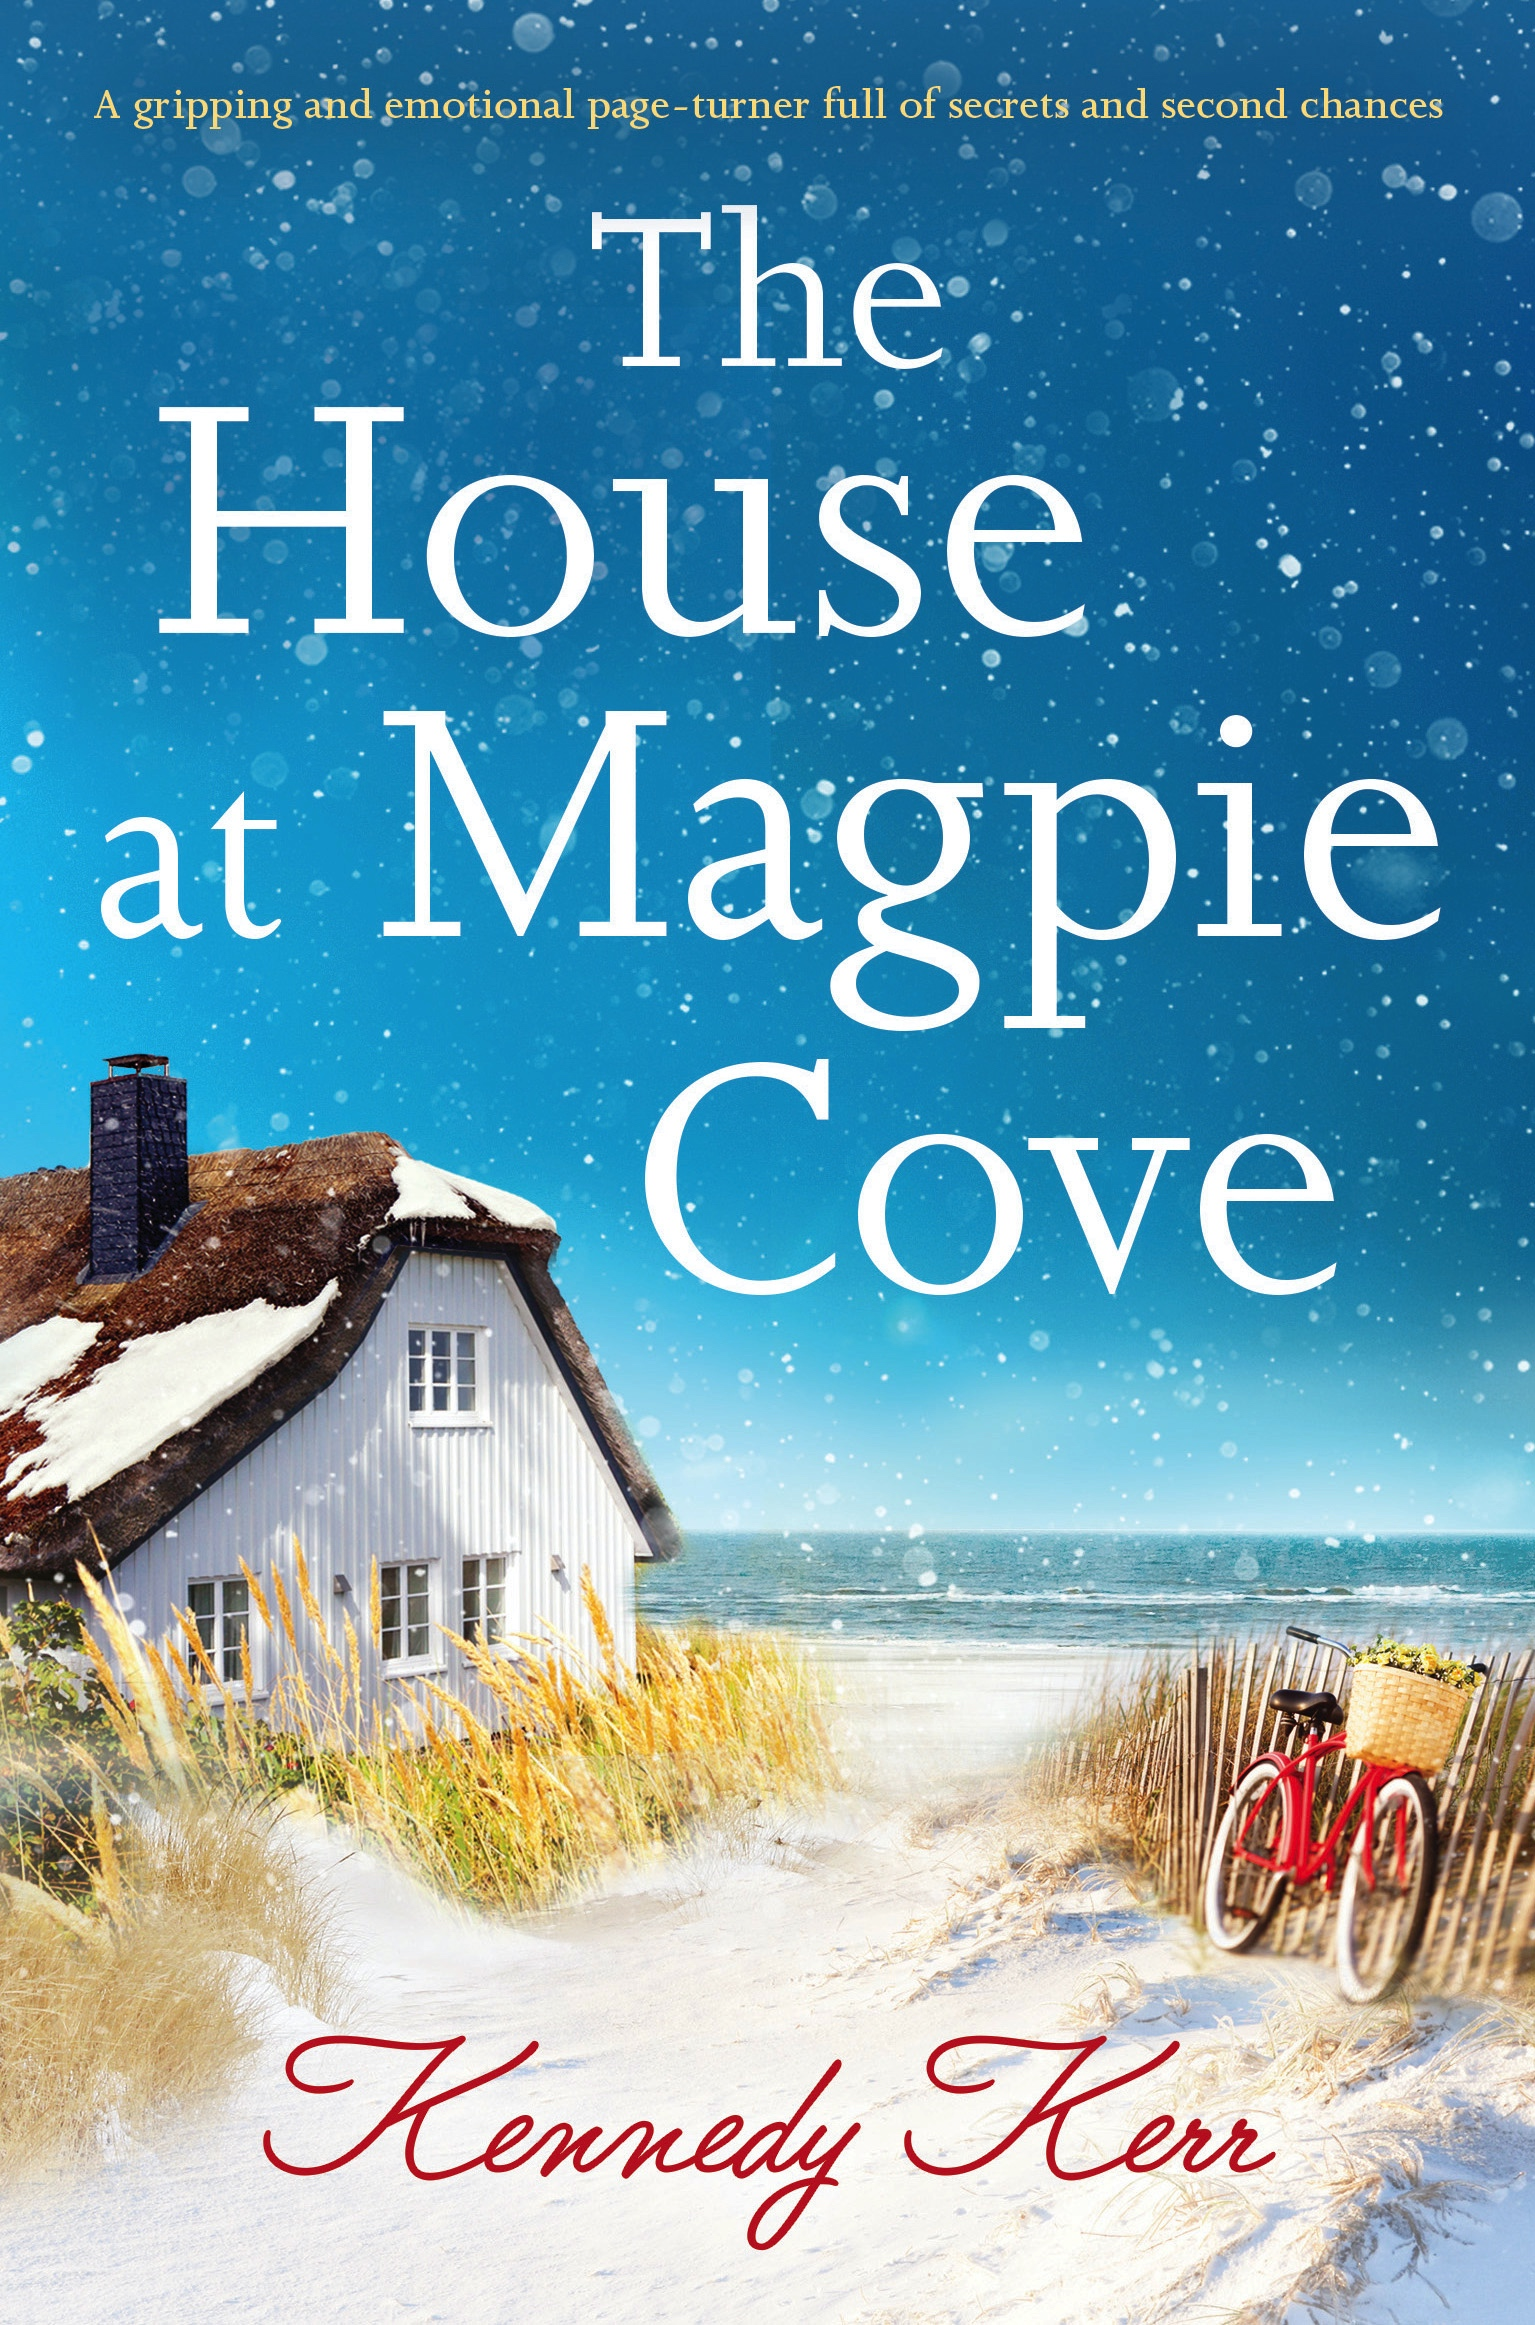 The House at Magpie Cove book cover